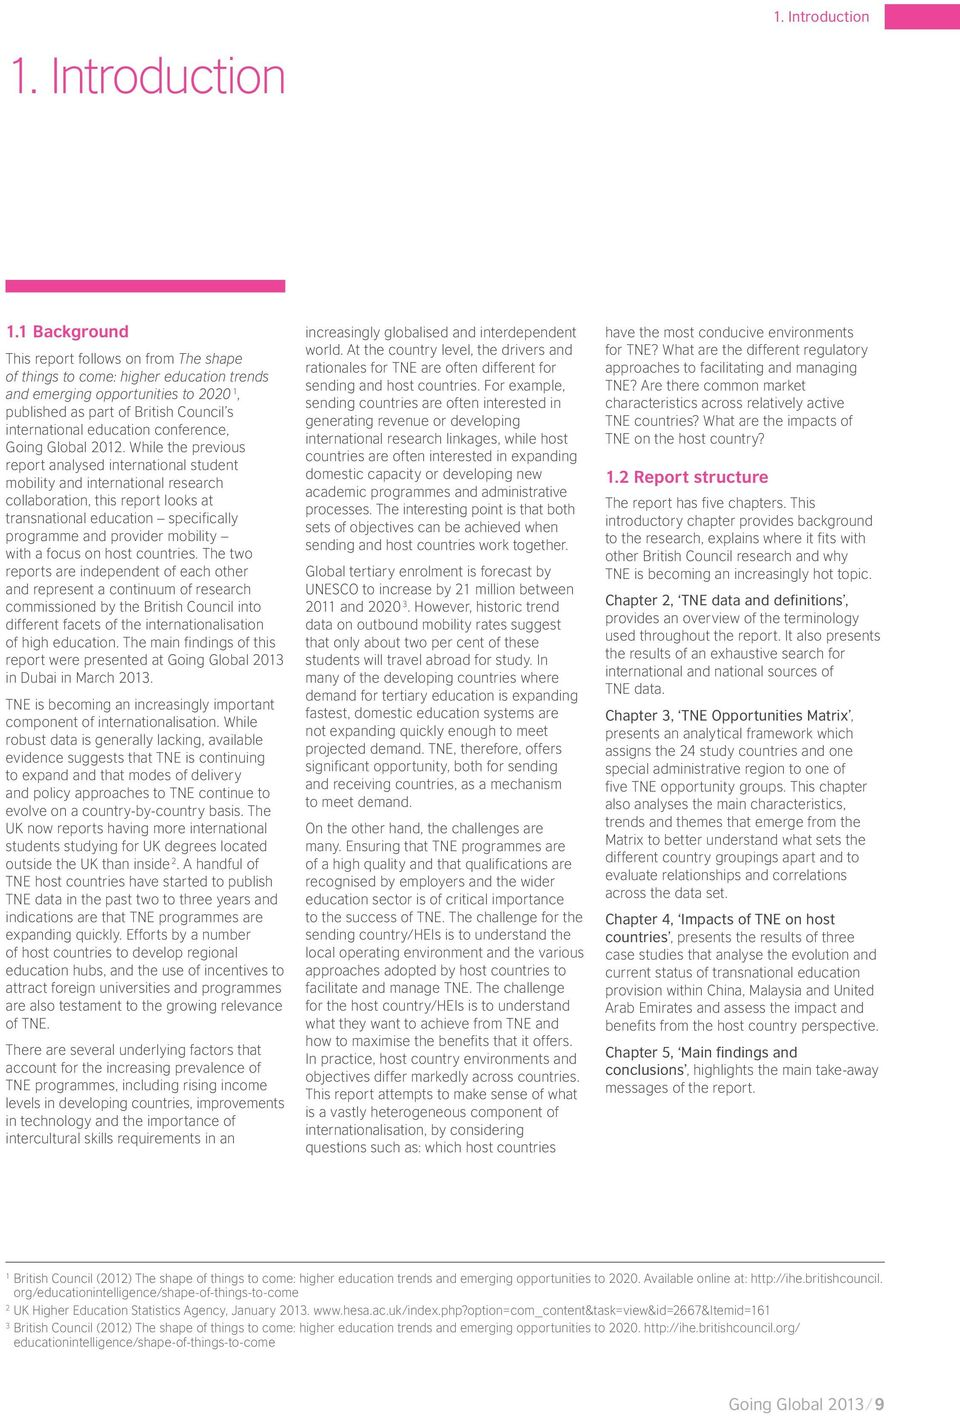 1 Background This report follows on from The shape of things to come: higher education trends and emerging opportunities to 2020 1, published as part of British Council s international education